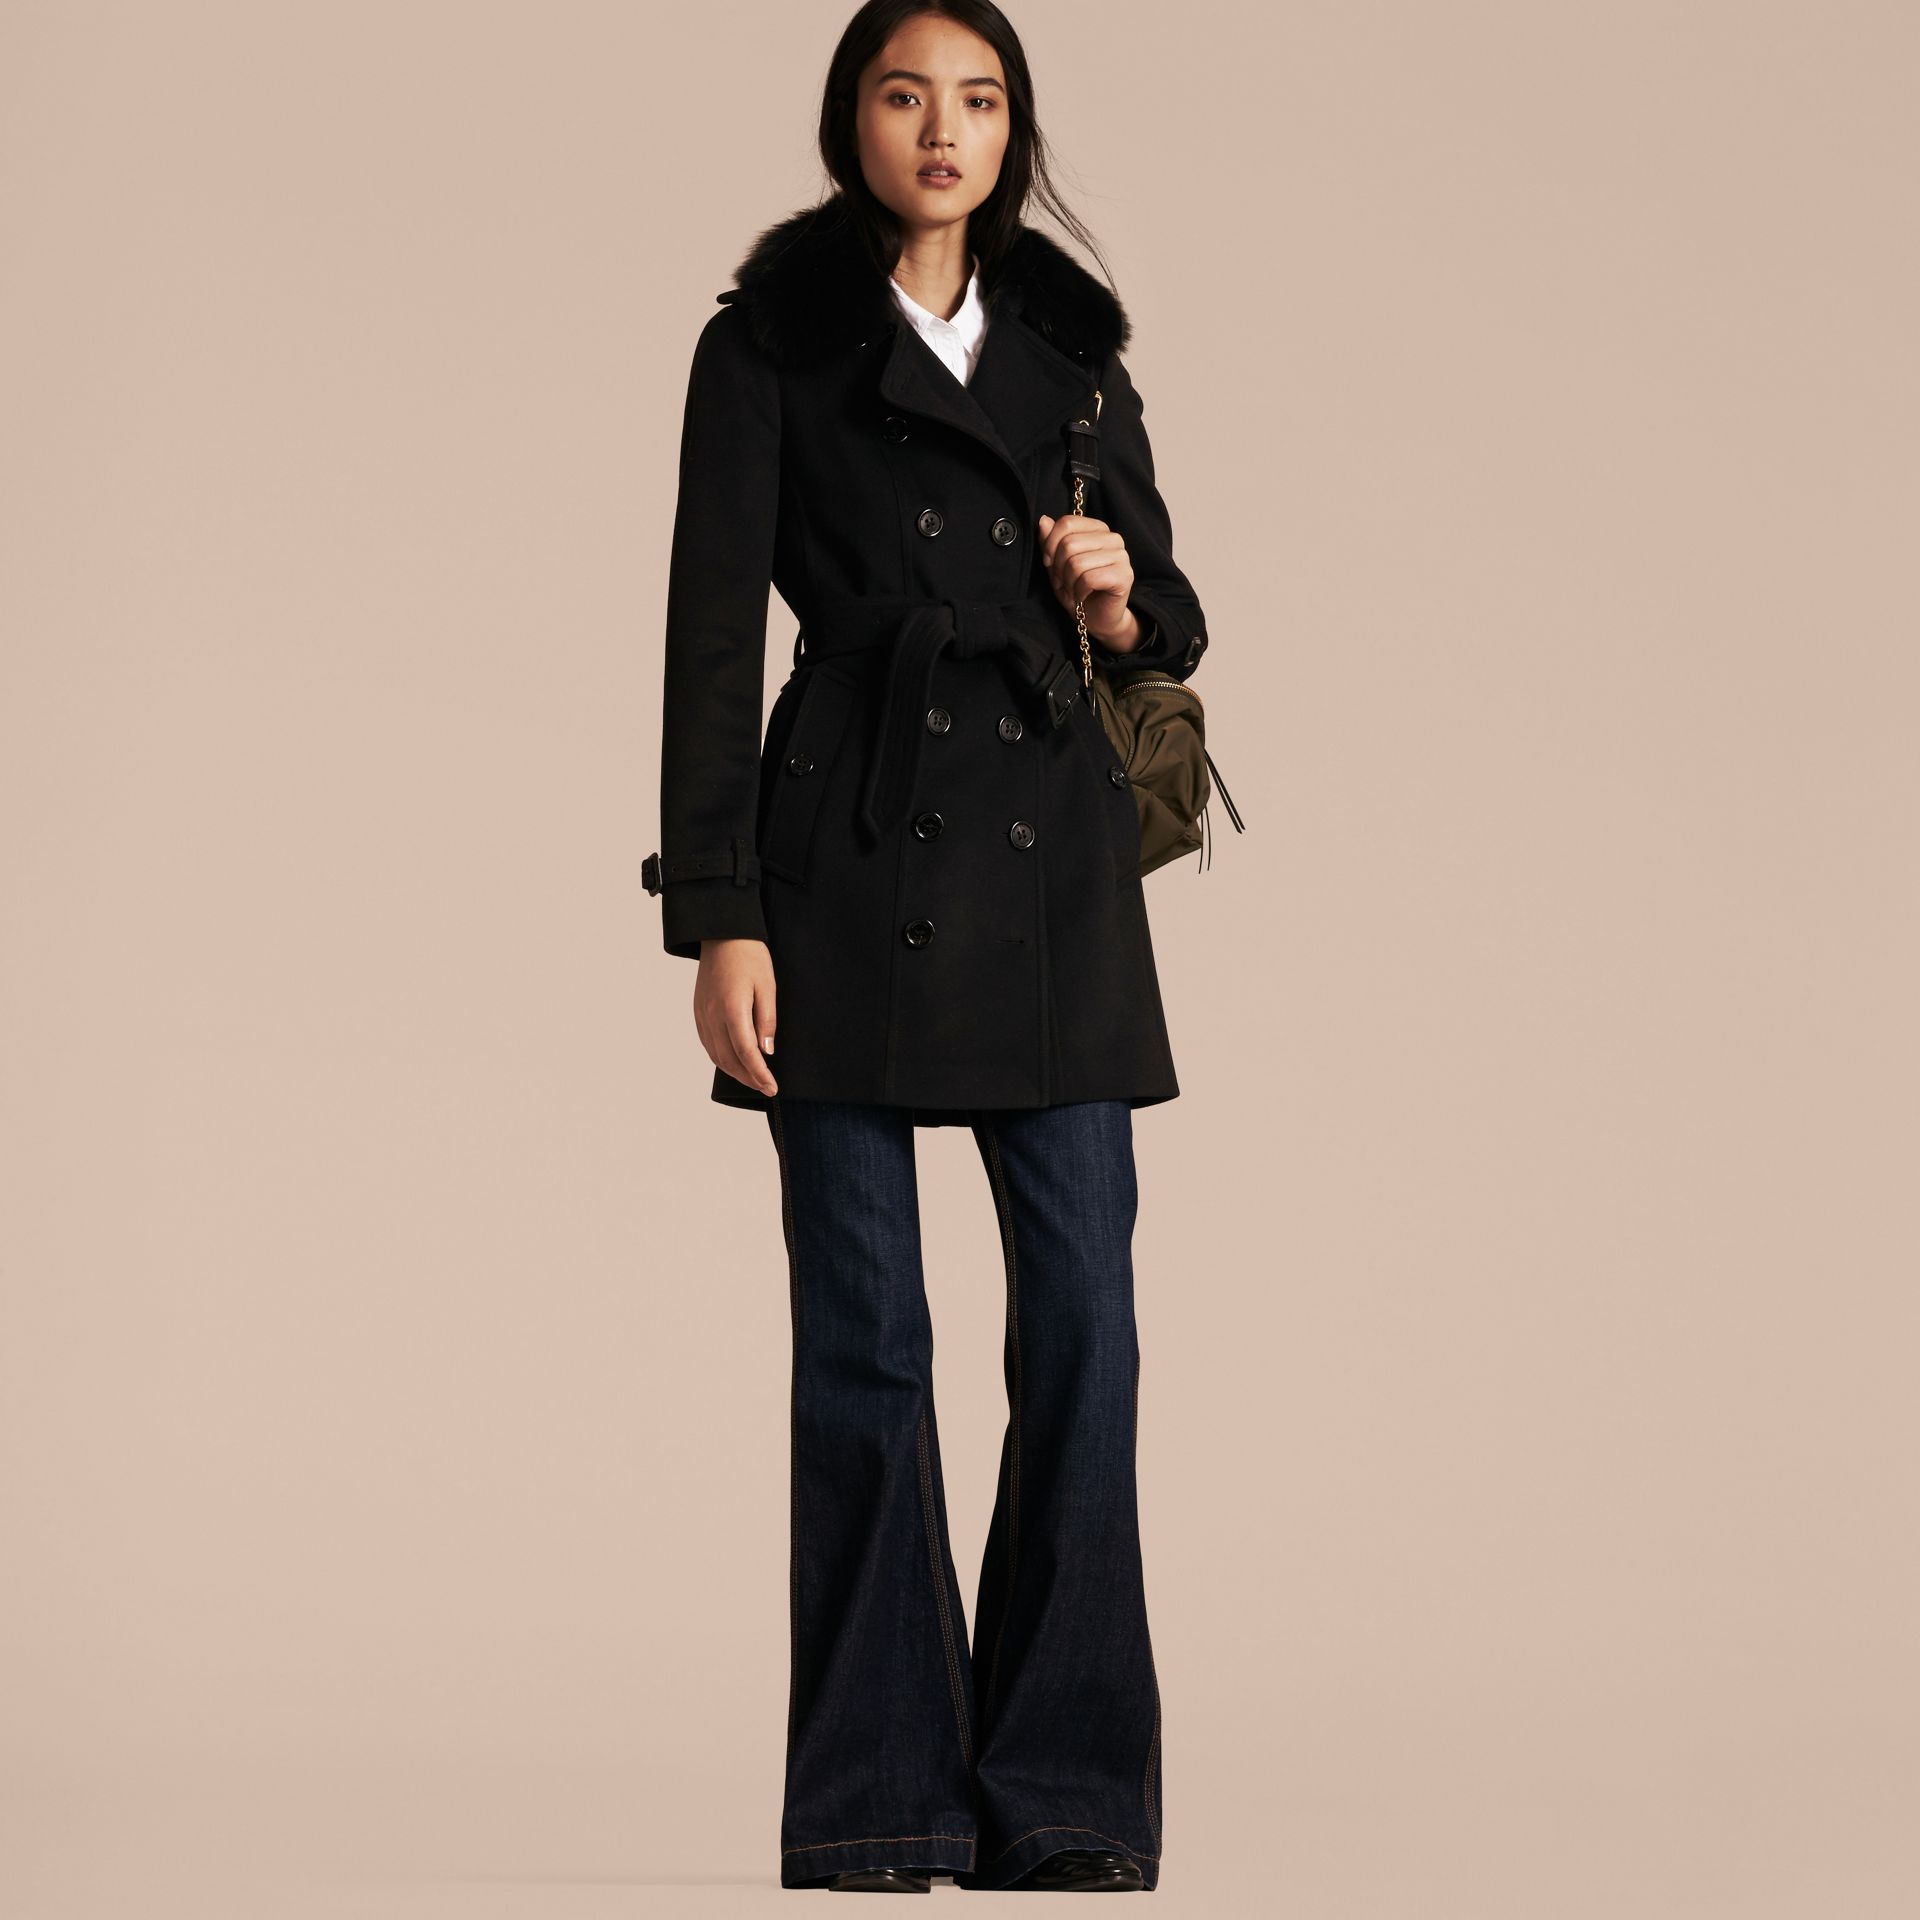 Wool Cashmere Trench Coat with Fur Collar in Black - Women | Burberry Australia - gallery image 1